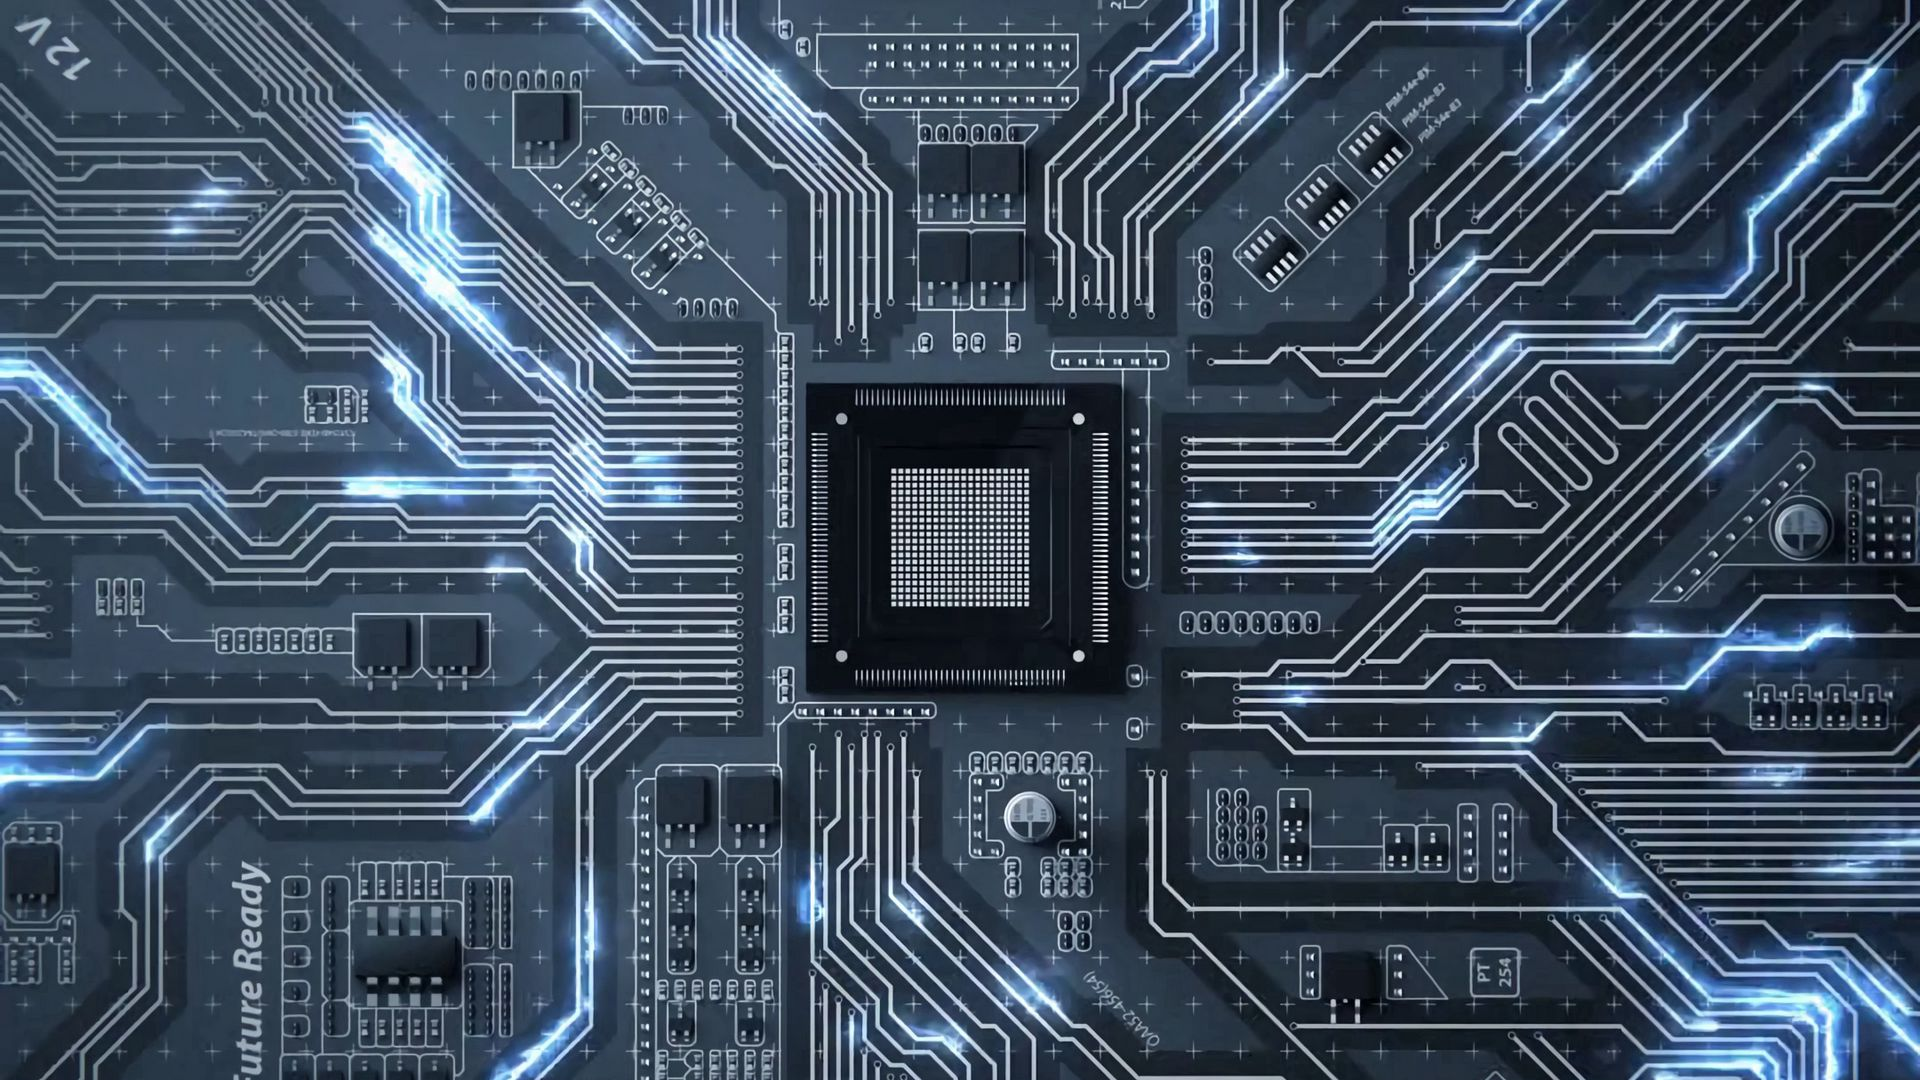 1920x1080 Wallpaper chip, circuit, processor, transistors, tracks, glow